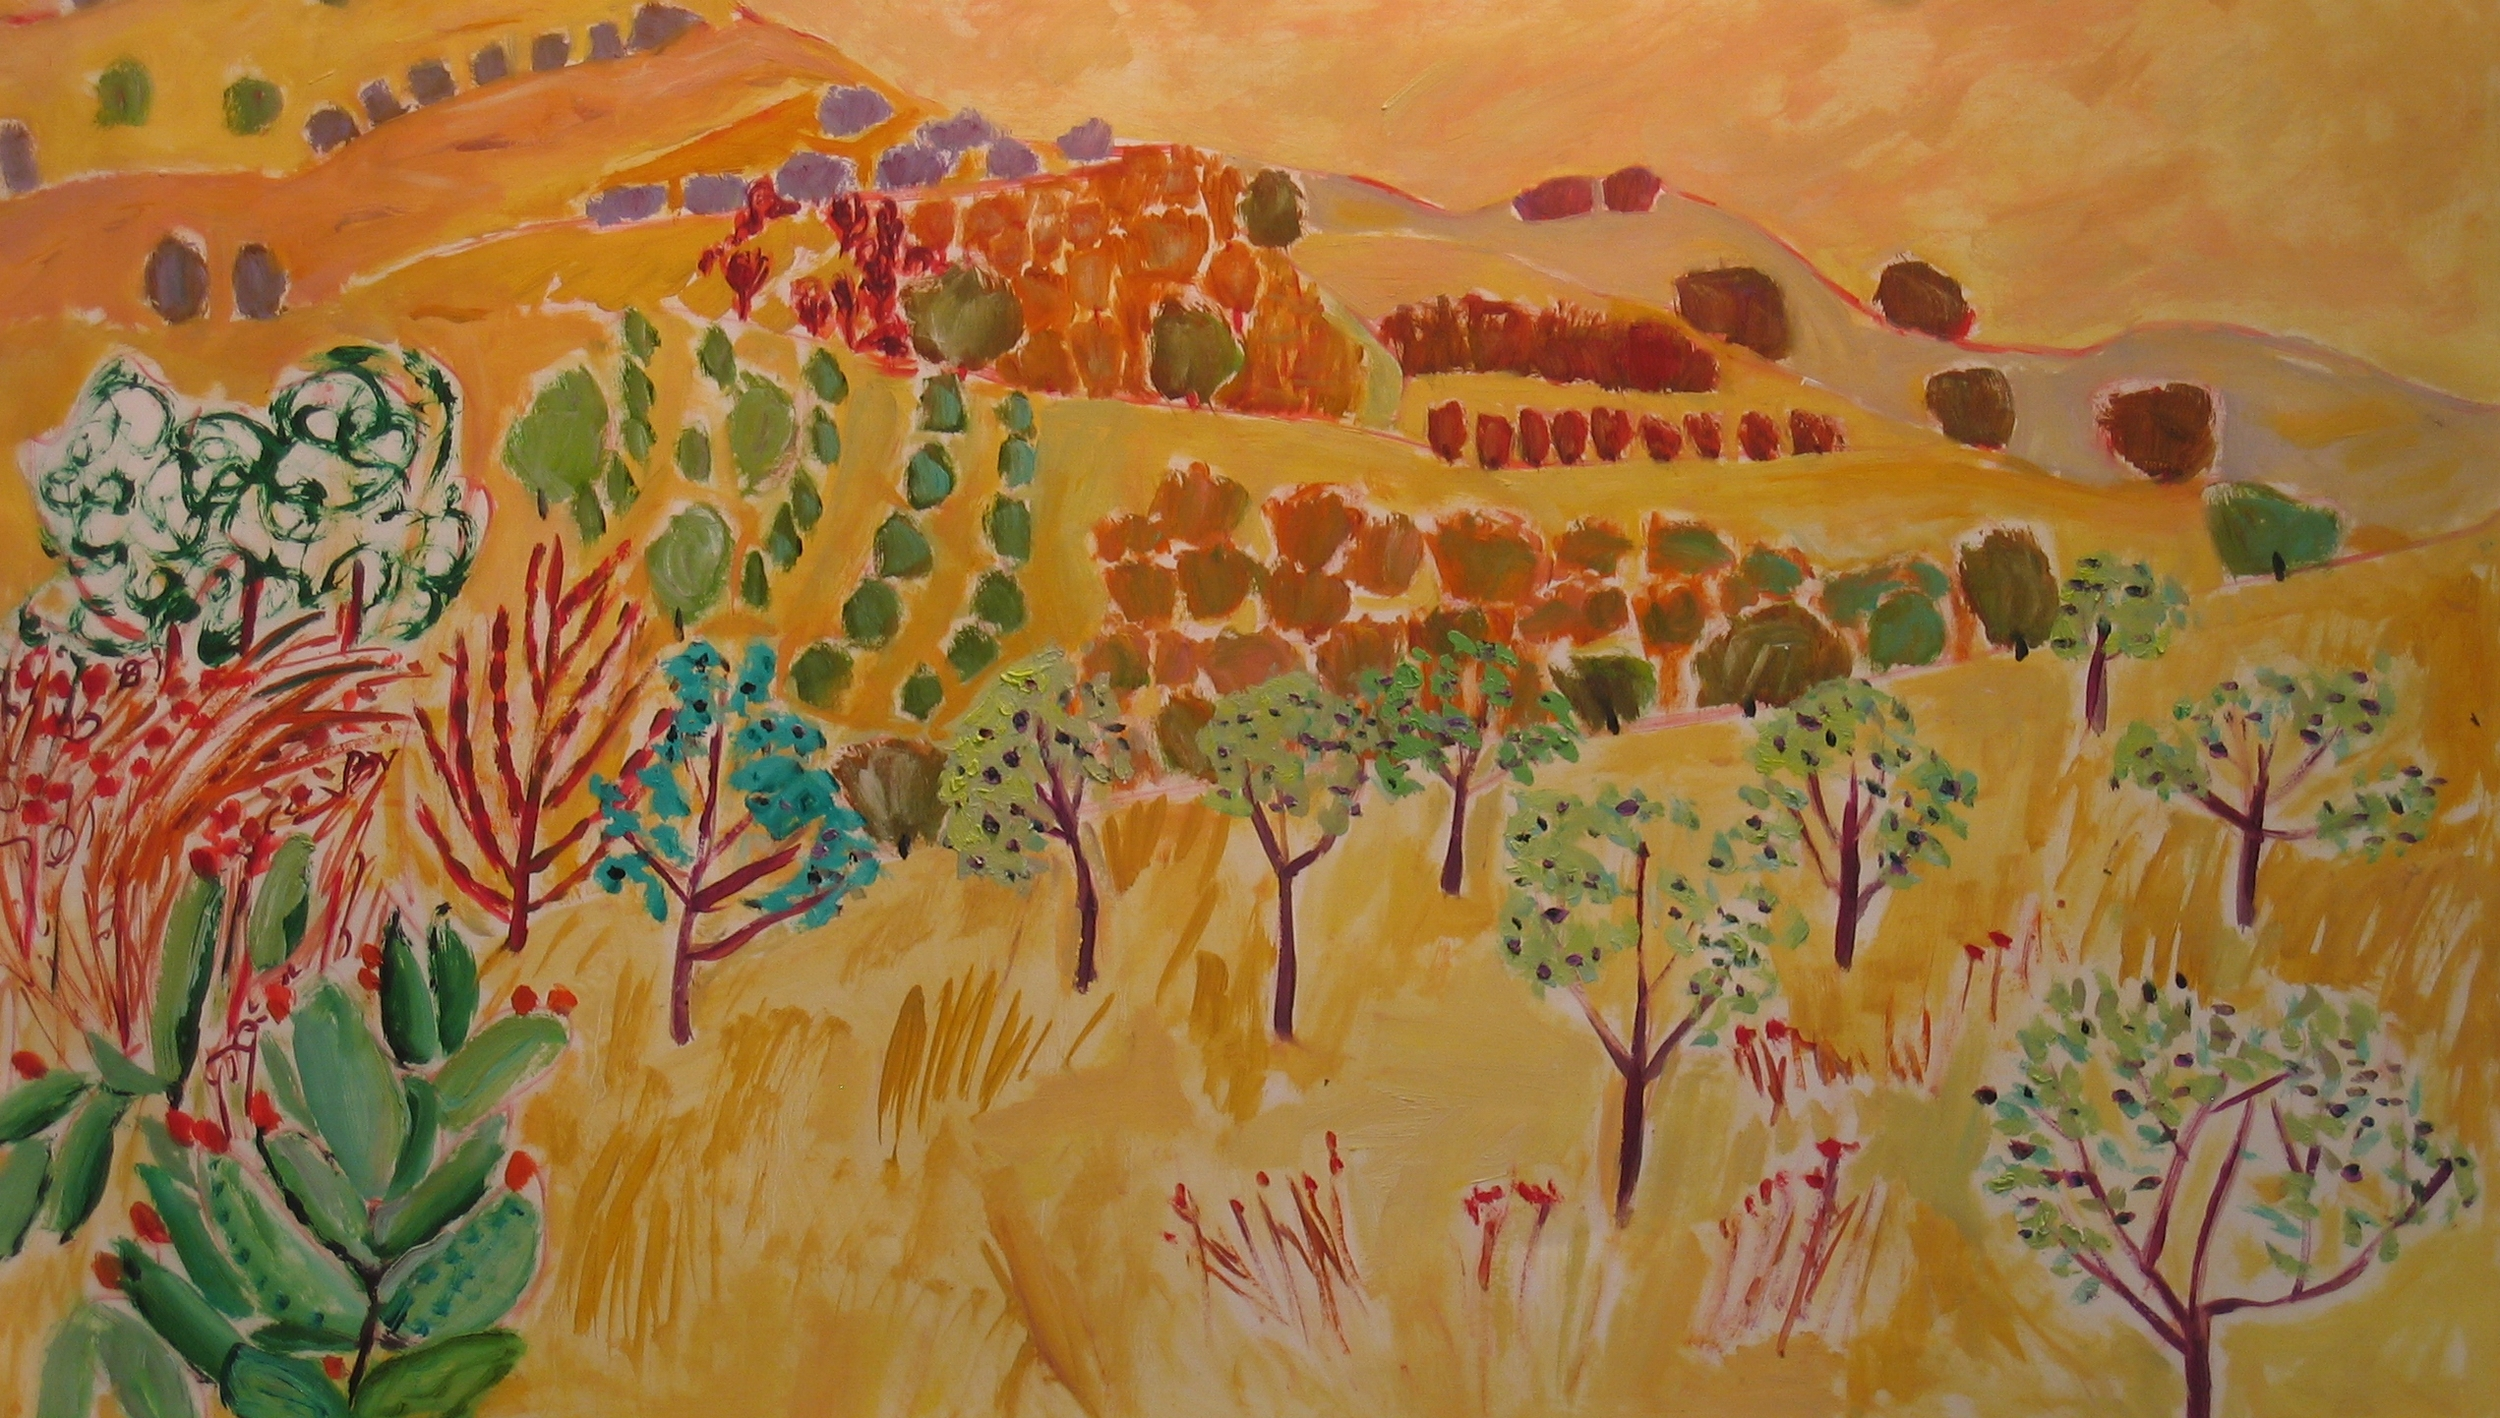 L Oilive grove (26x40)ins oil on paper.jpg